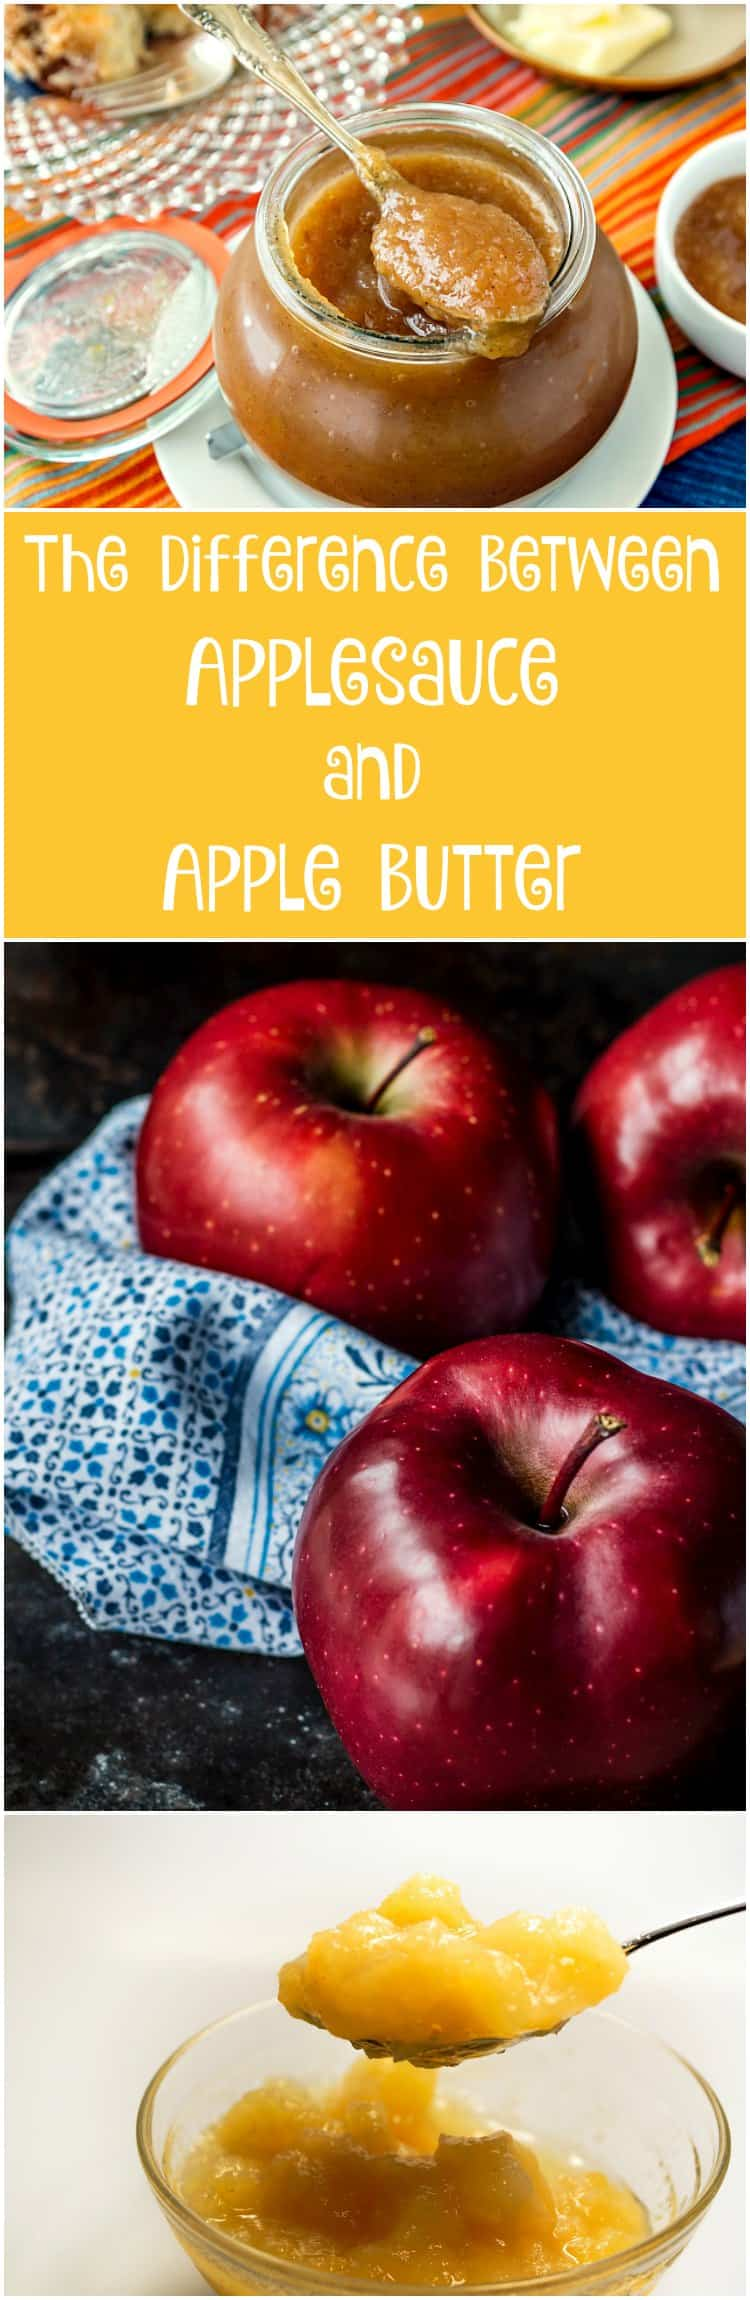 """Long pin of a jar of apple butter with text below reading, """"The difference between applesauce and apple butter"""". Below that is a picture of fresh red apples. and finally a glass bowl of applesauce with a spoonful of it lifting out."""